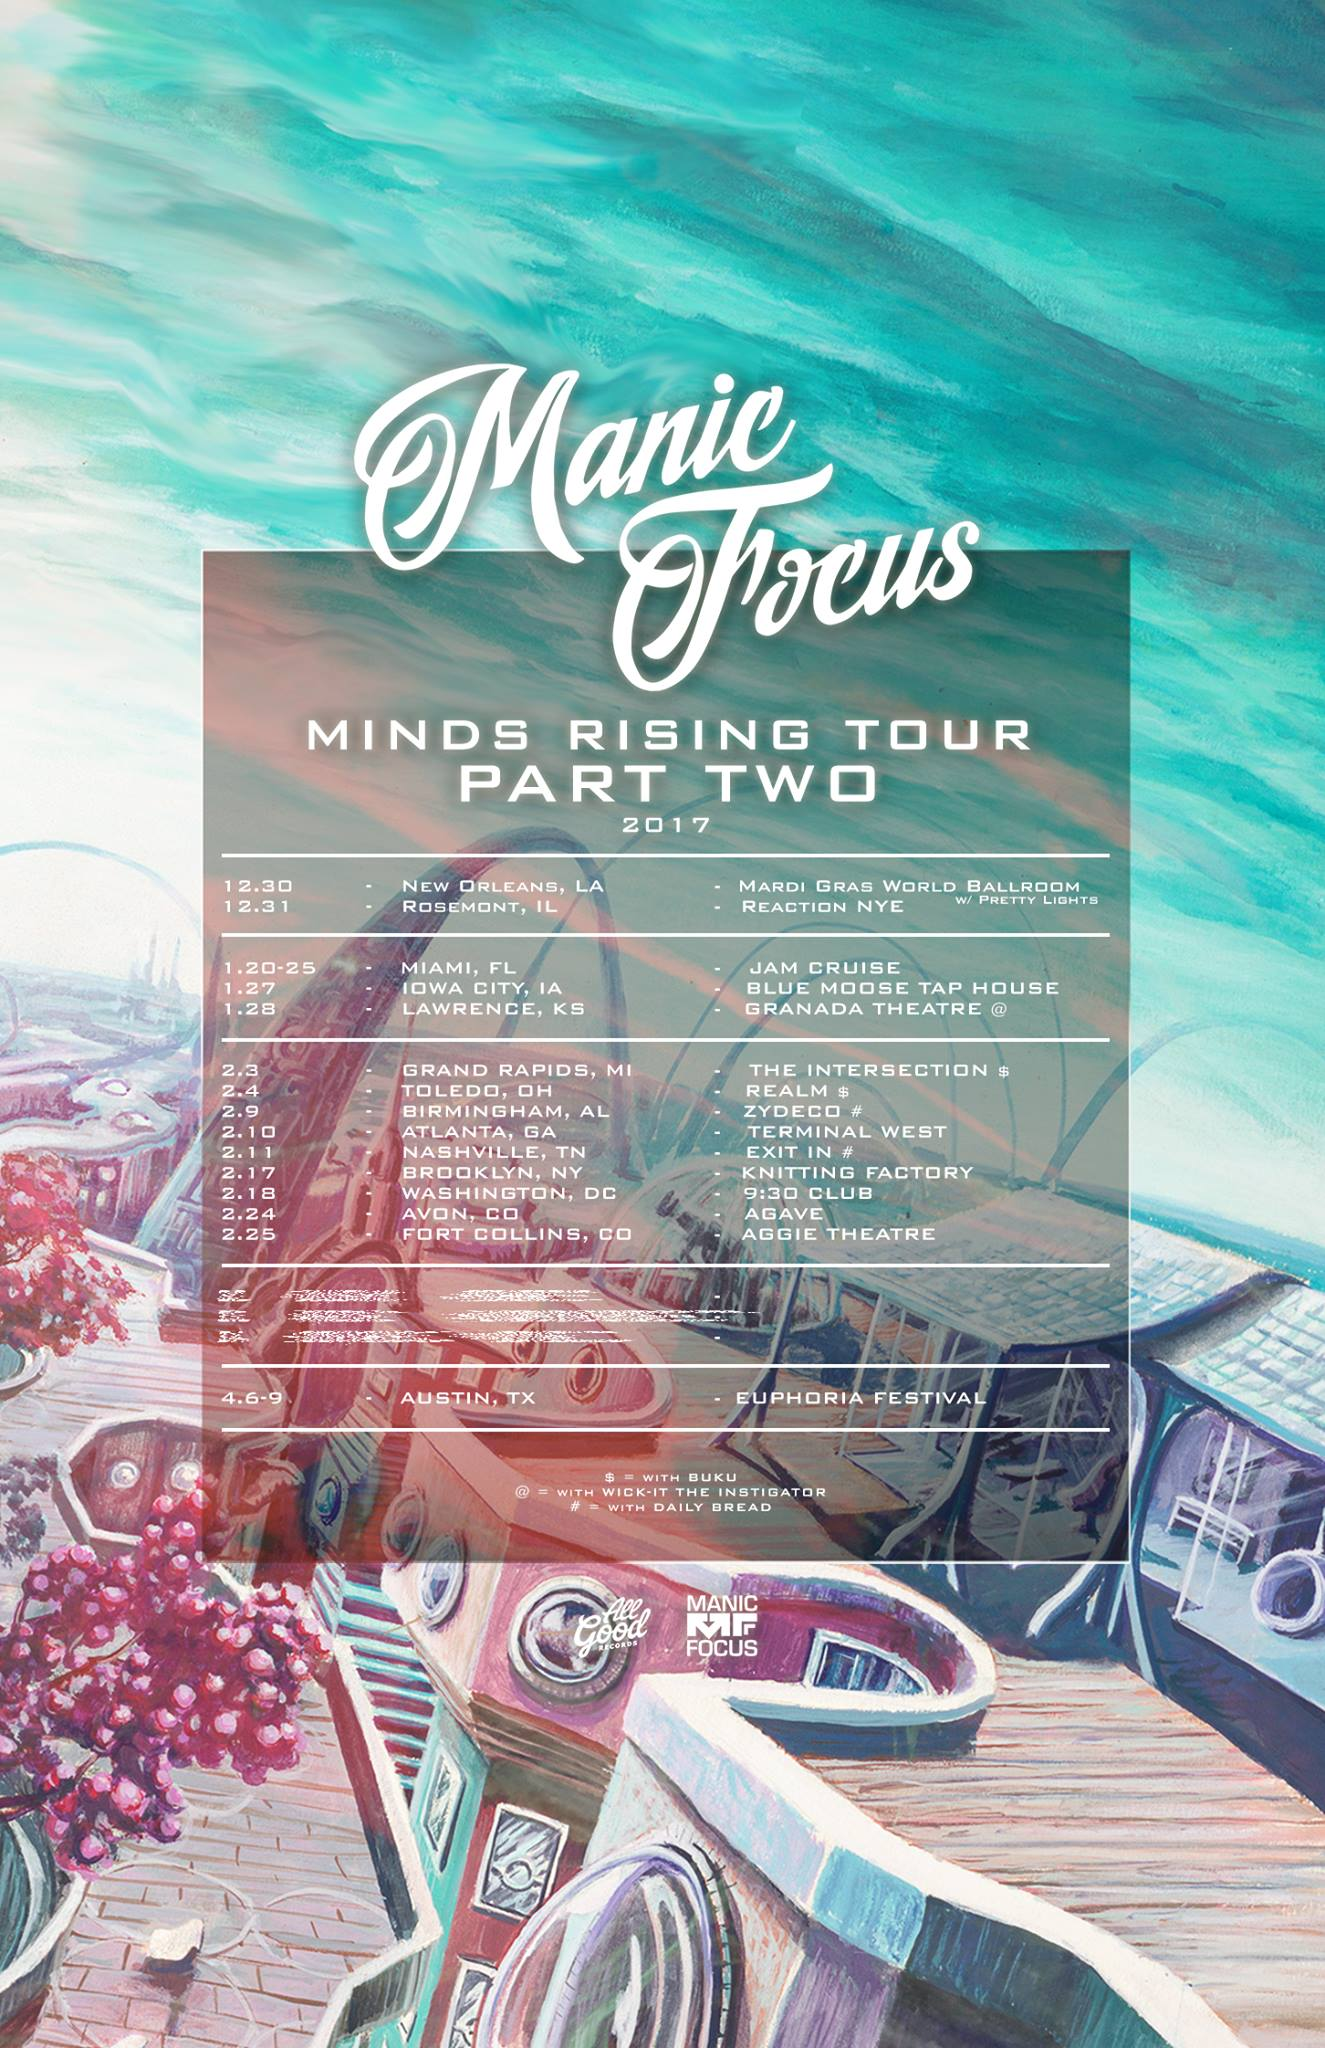 Knitting Factory Brooklyn Tickets : Manic focus knitting factory brooklyn ny